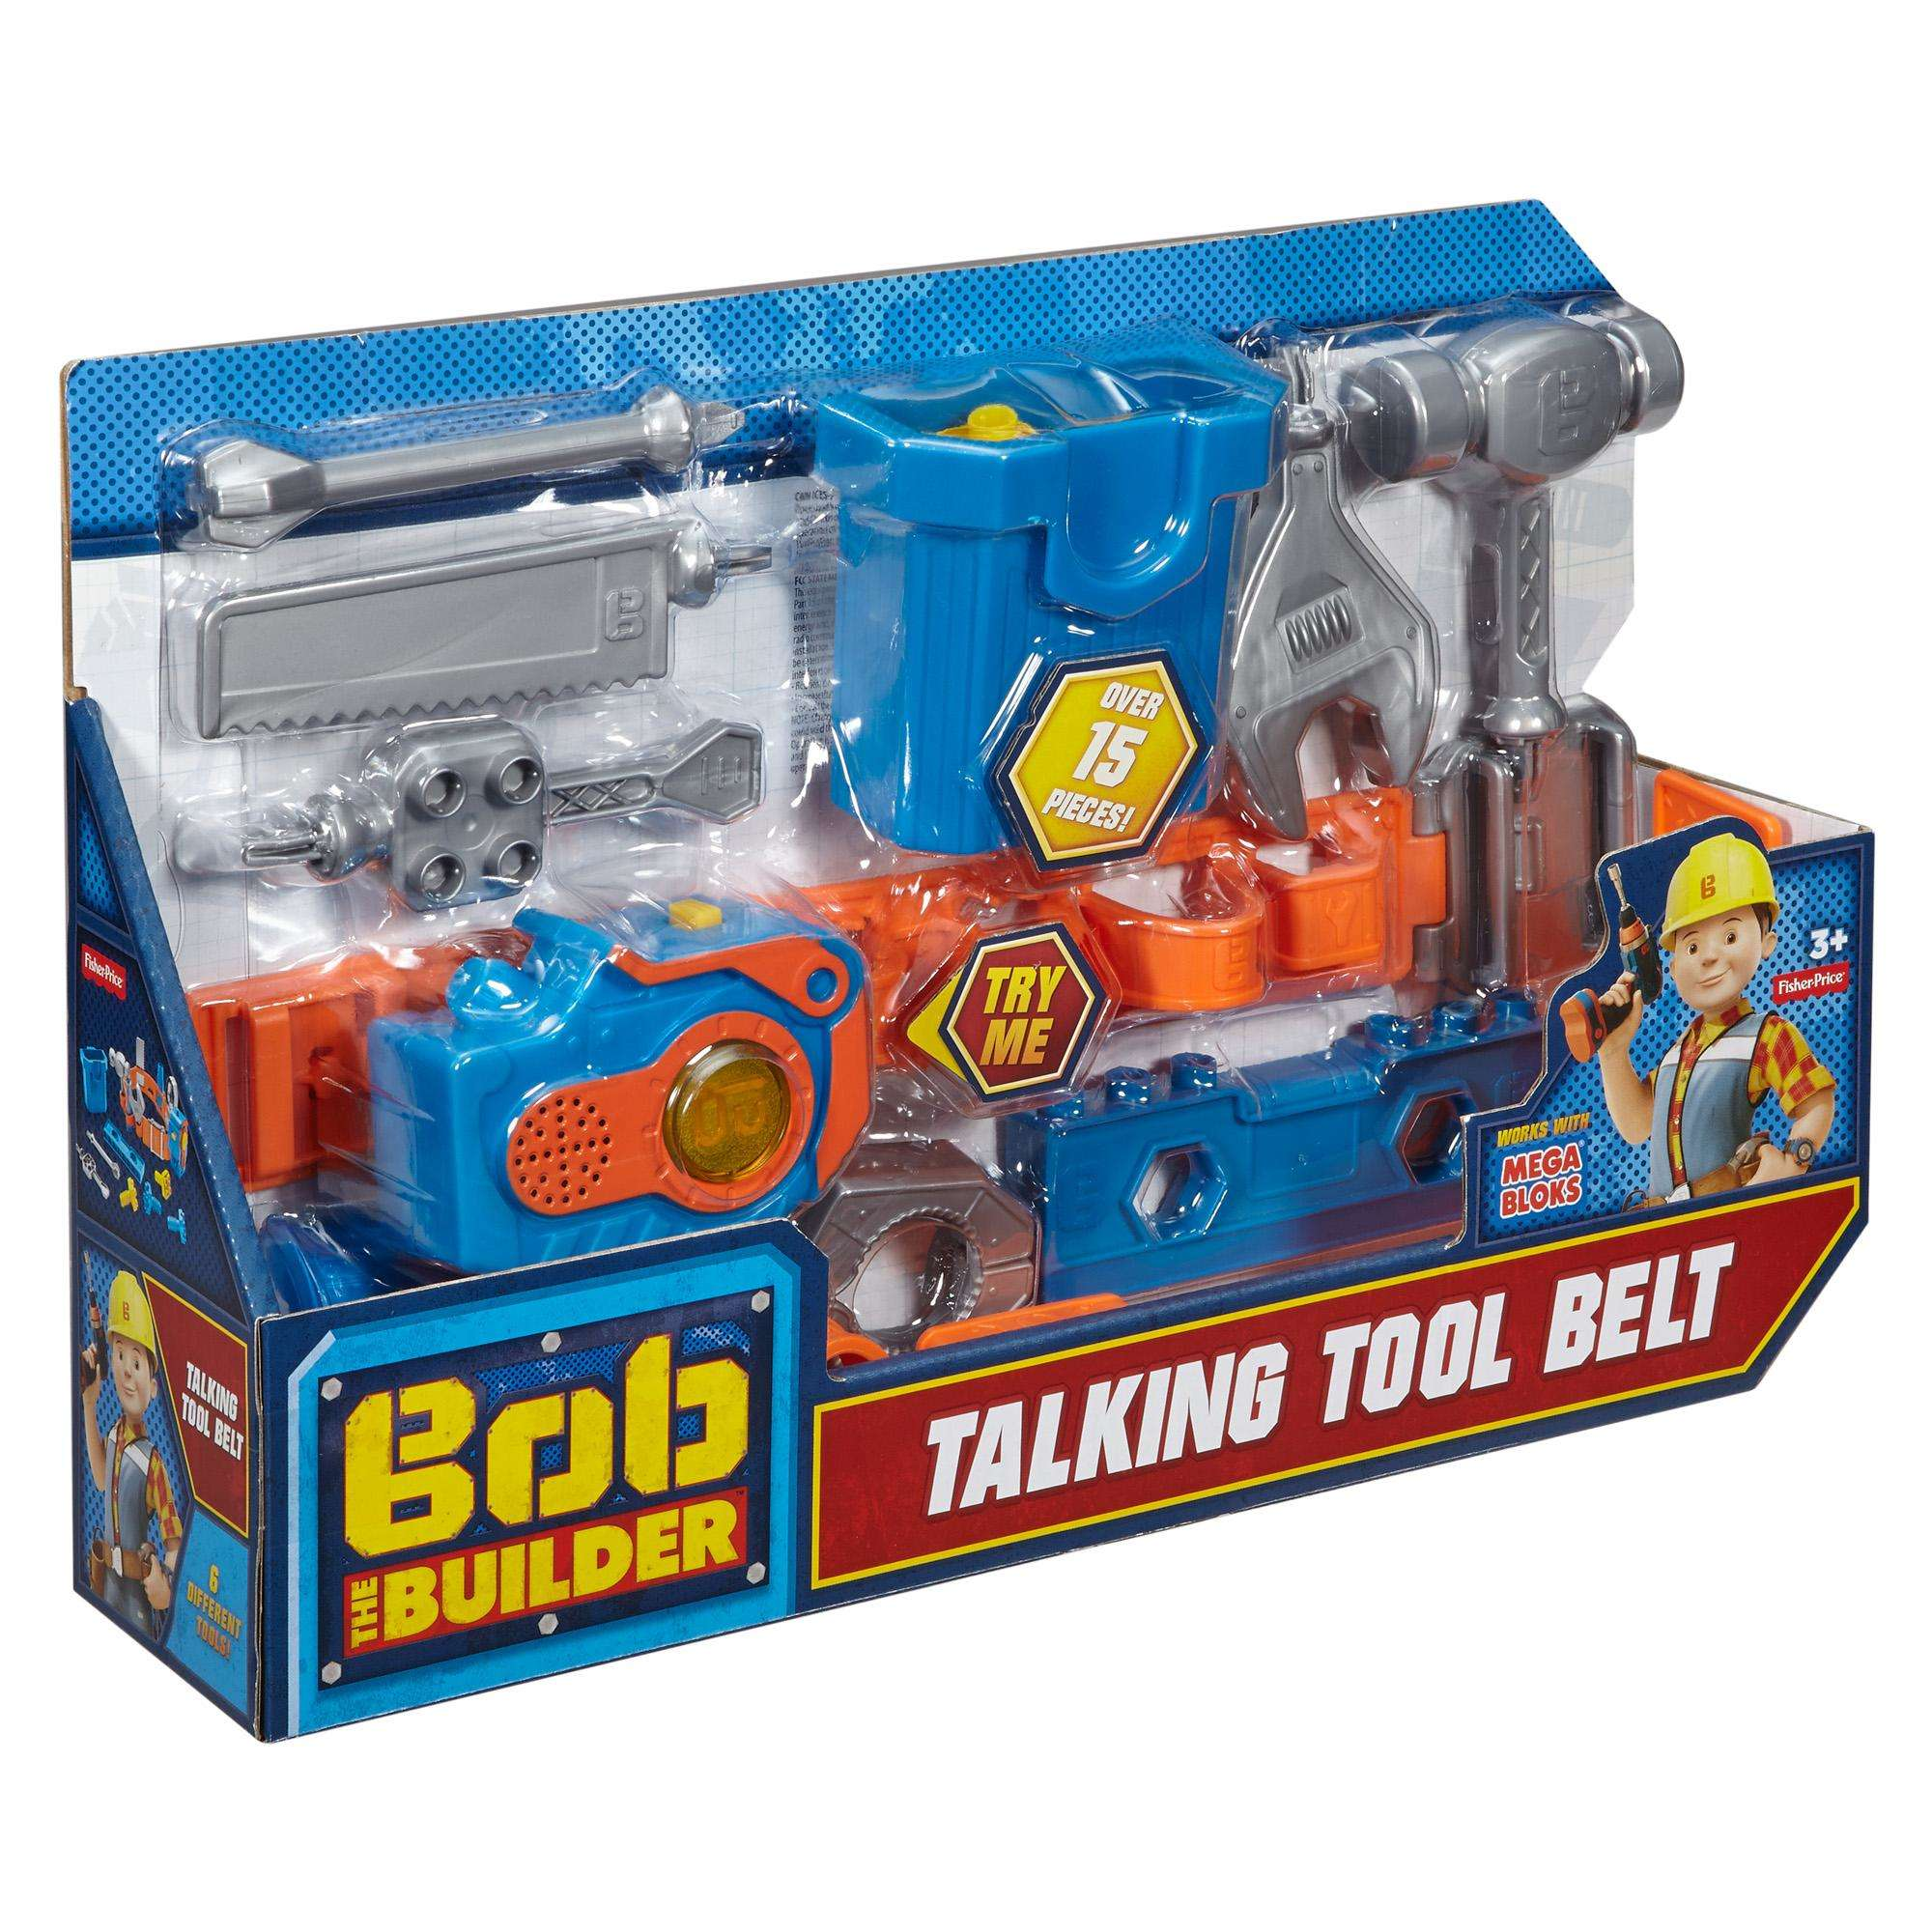 Bob the Builder Talking Tool Belt - Walmart.com